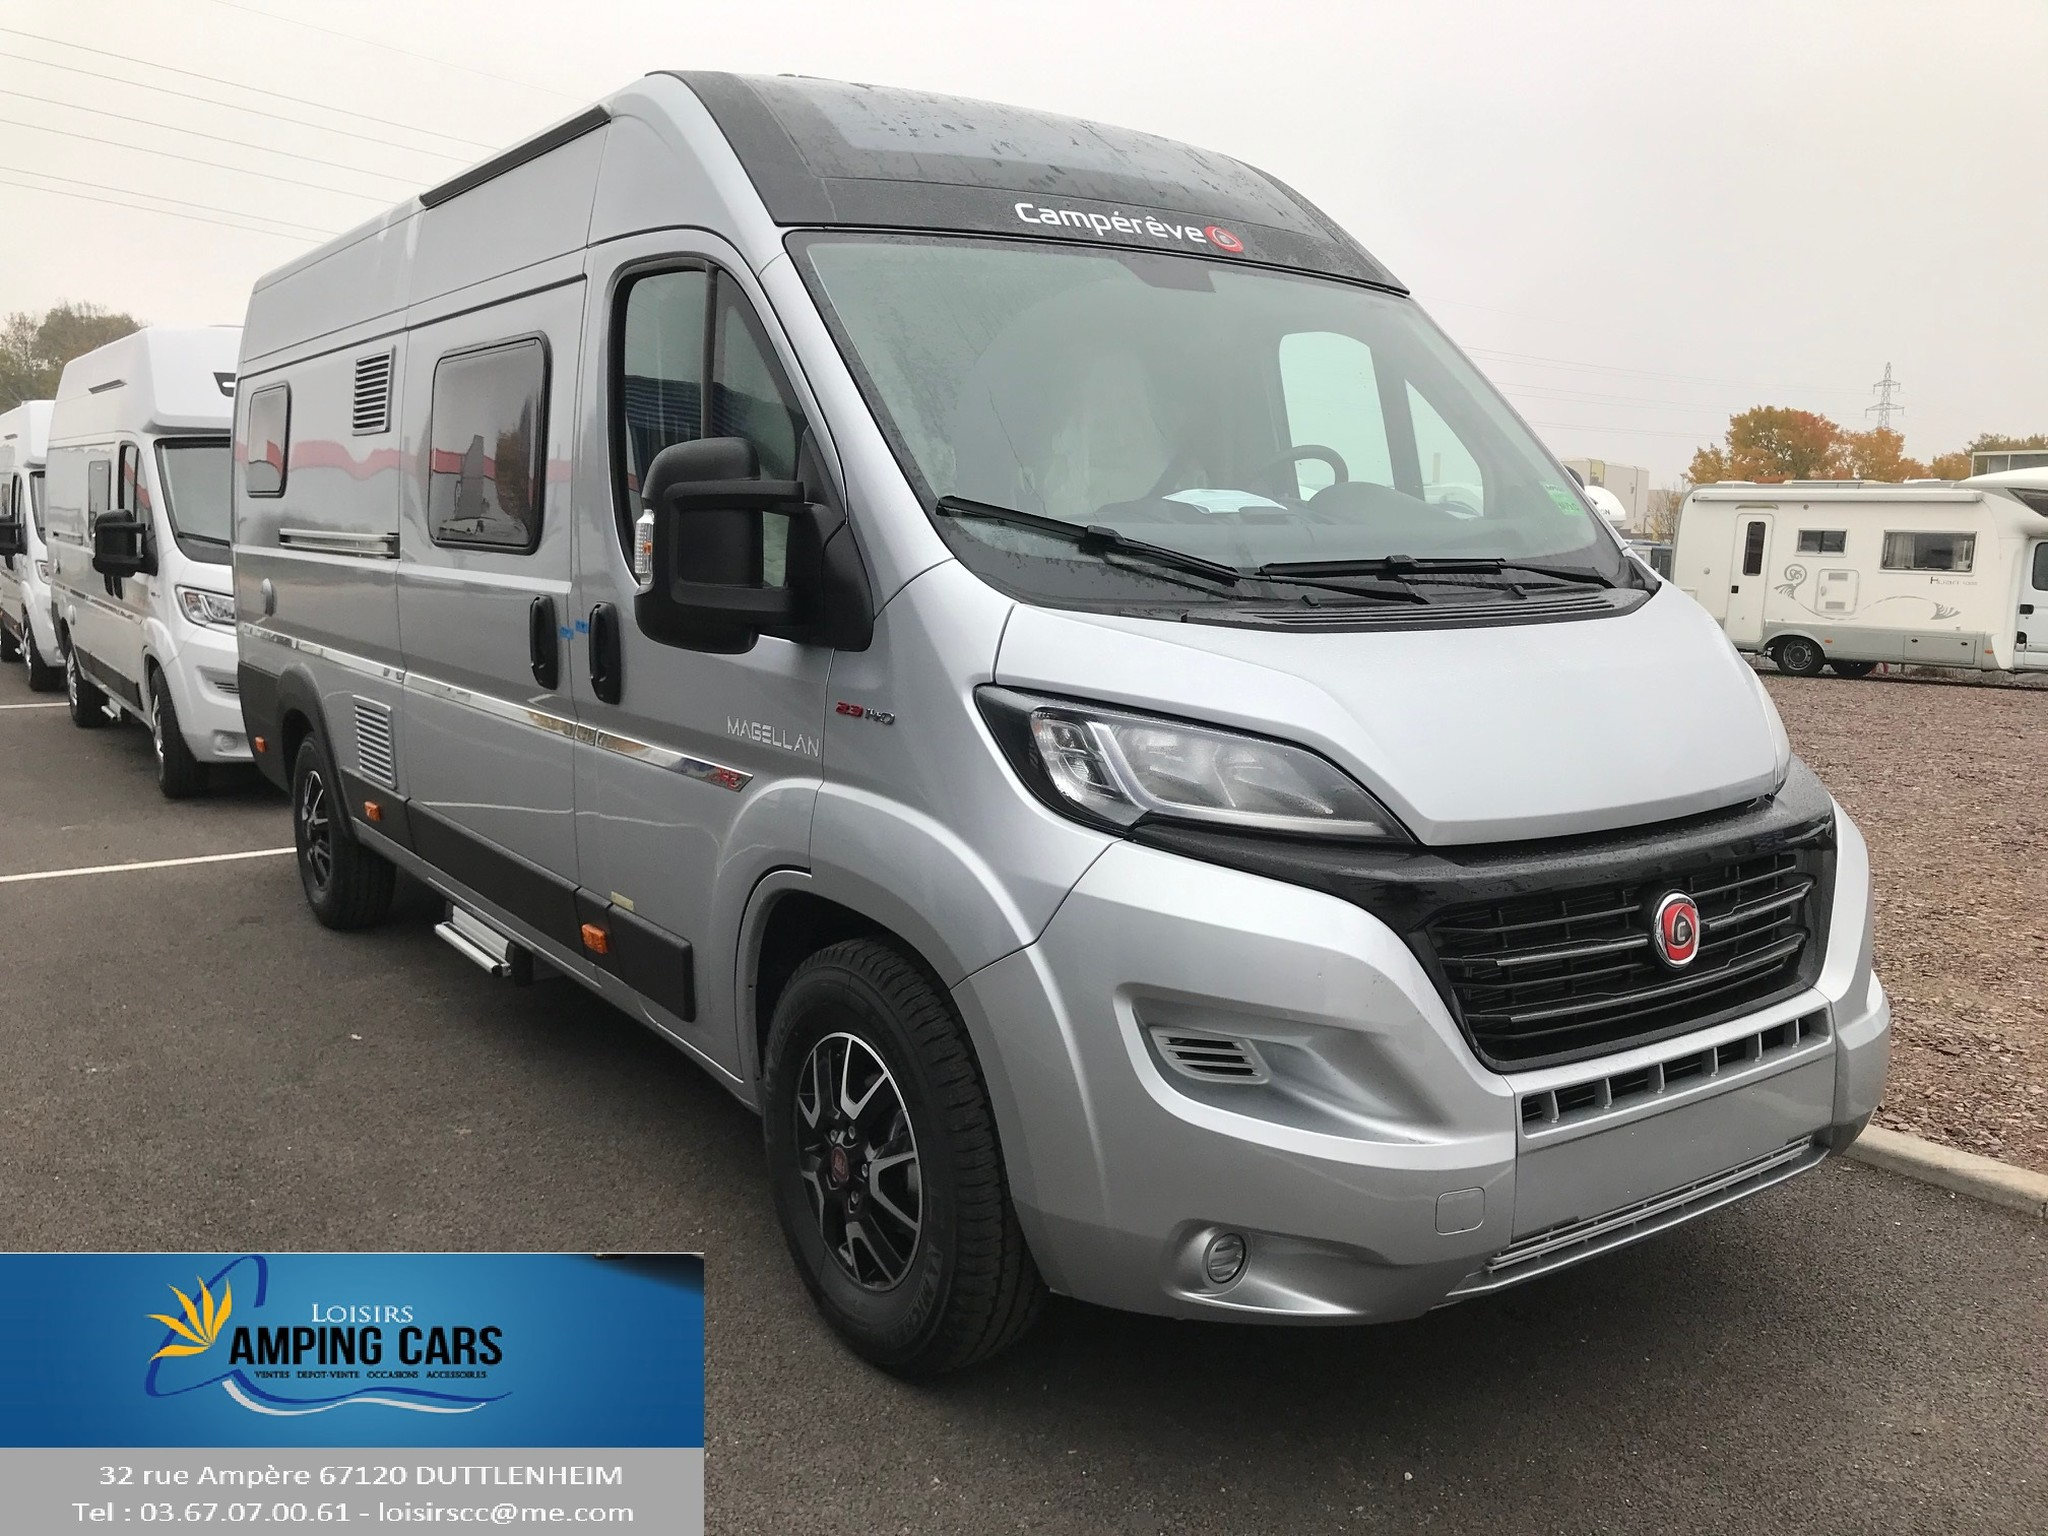 Camping-car CAMPEREVE MAGELLAN 742 LIMITED